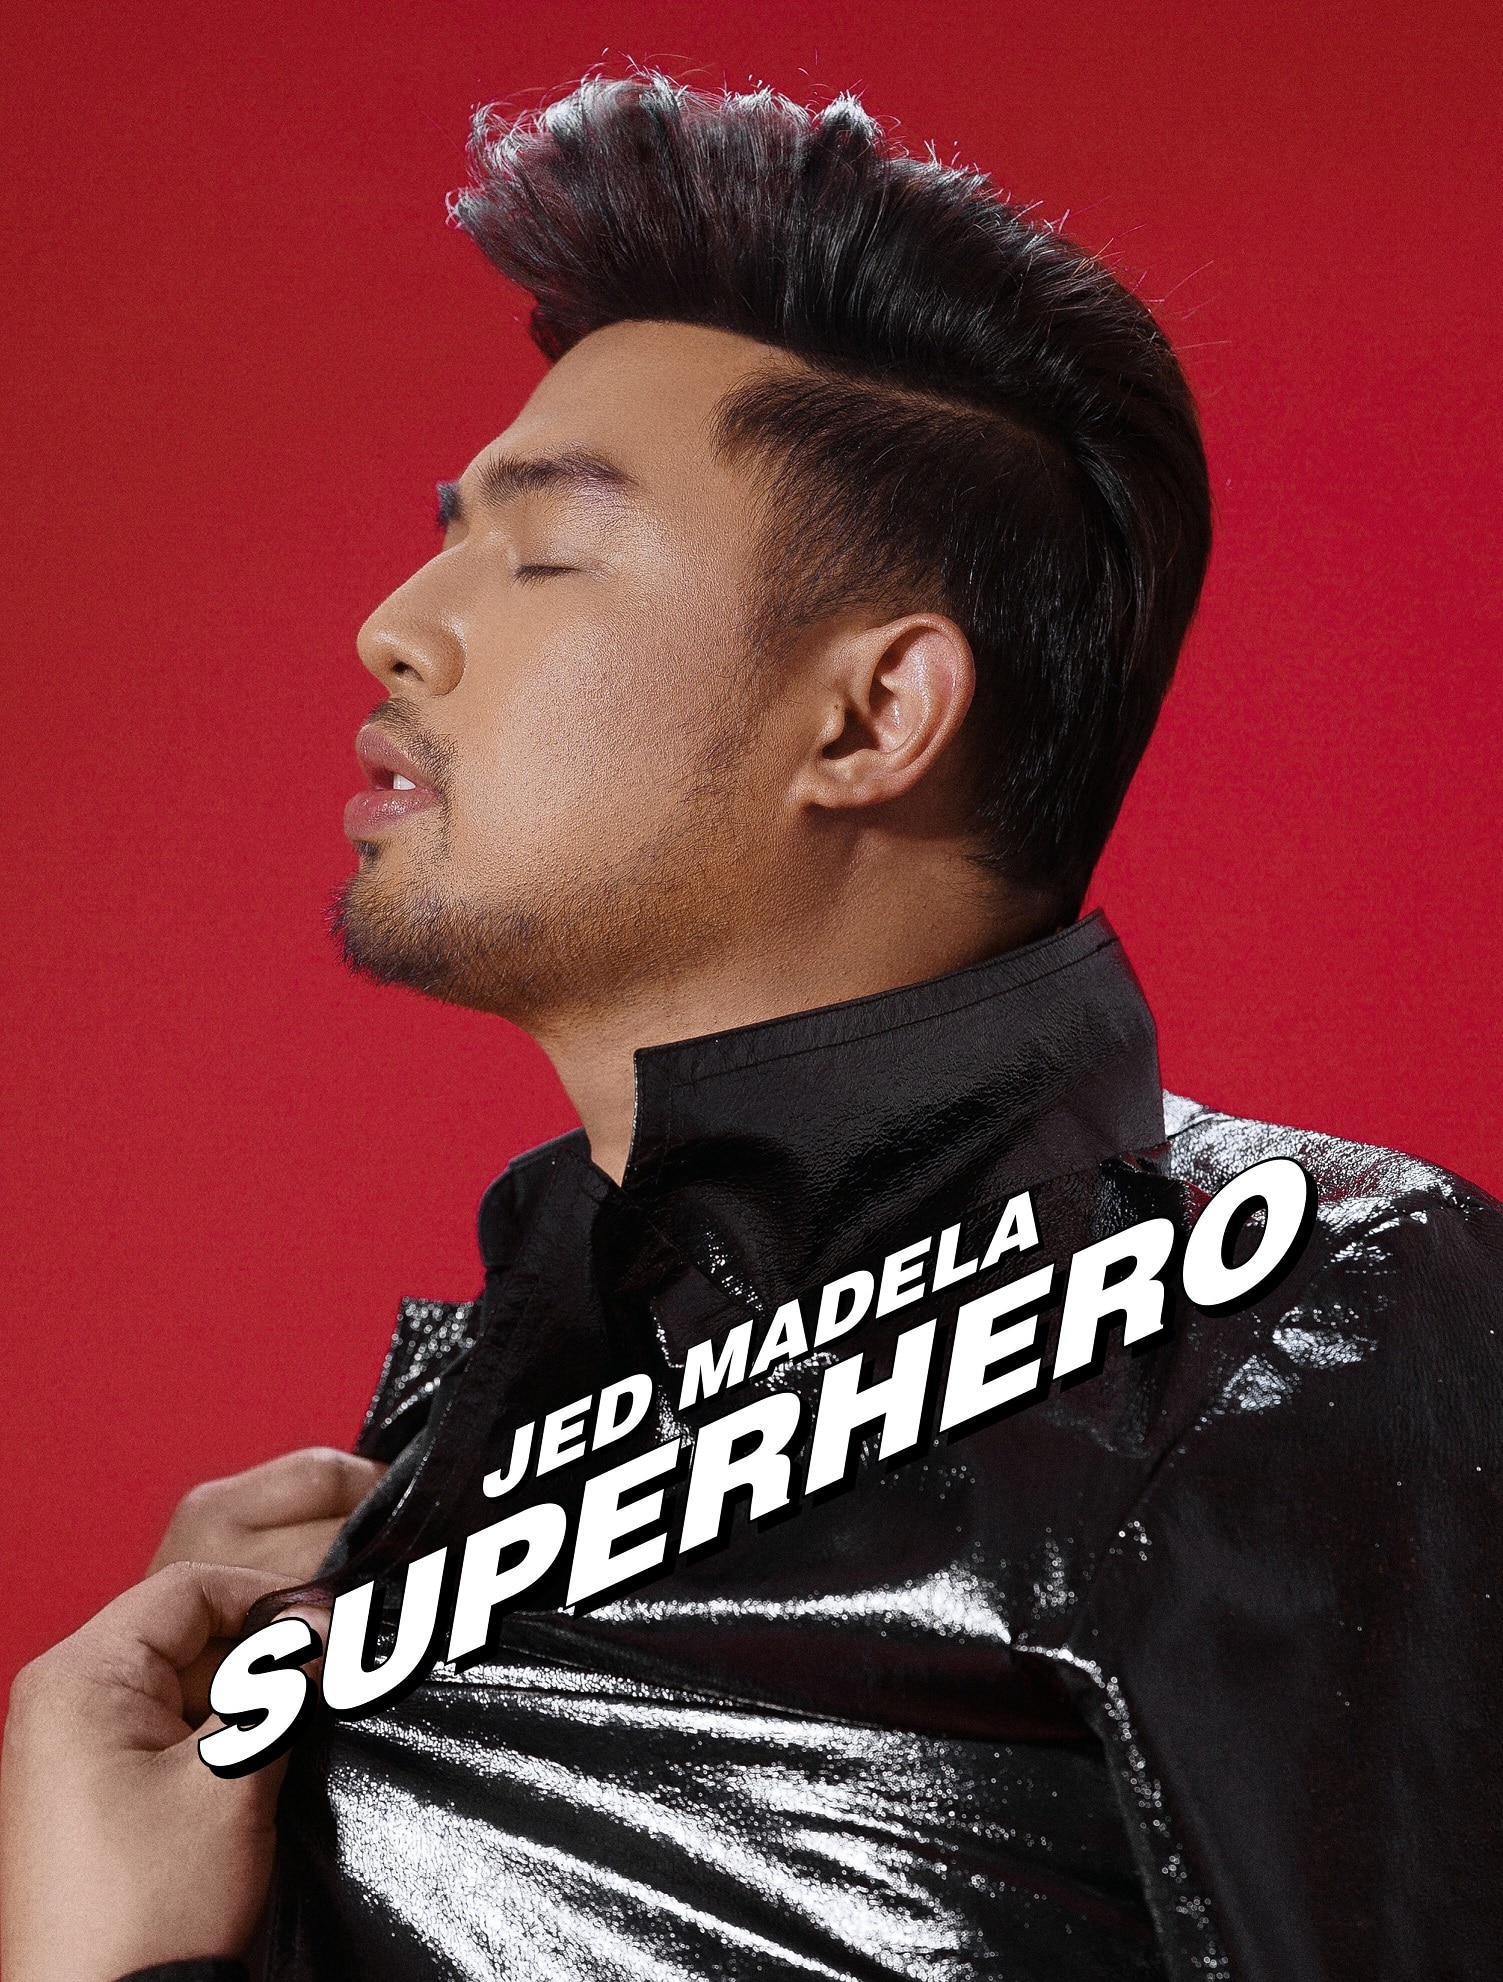 Jed Madela Superhero album cover